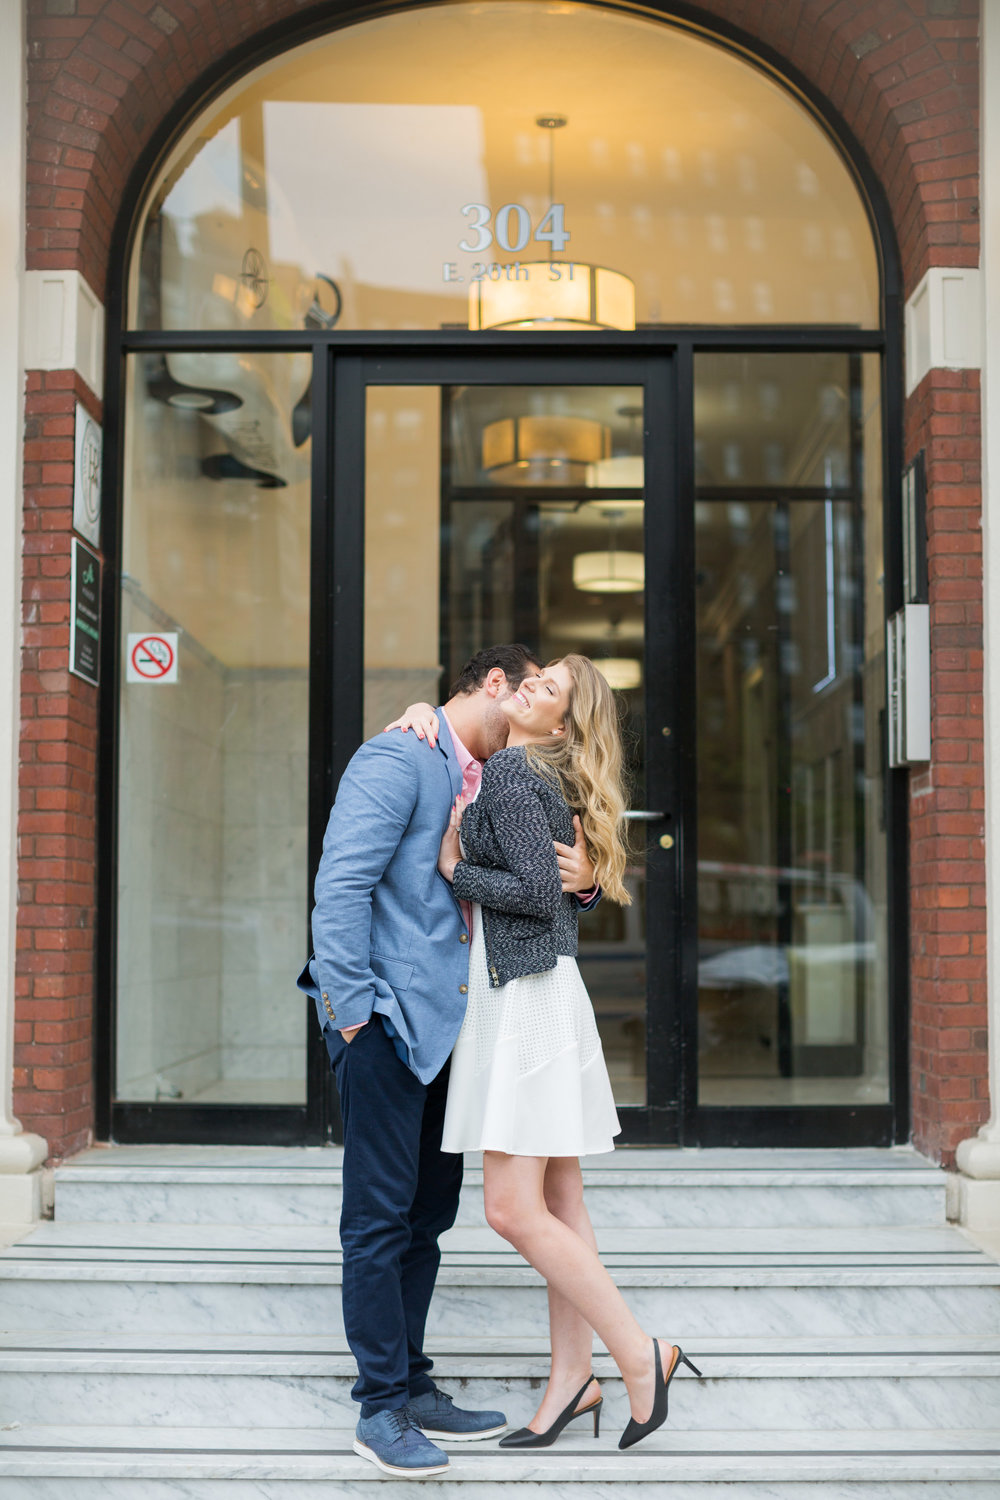 Melissa Kruse Photography - Courtney & JP Gramercy NYC Engagement Photos-106.jpg